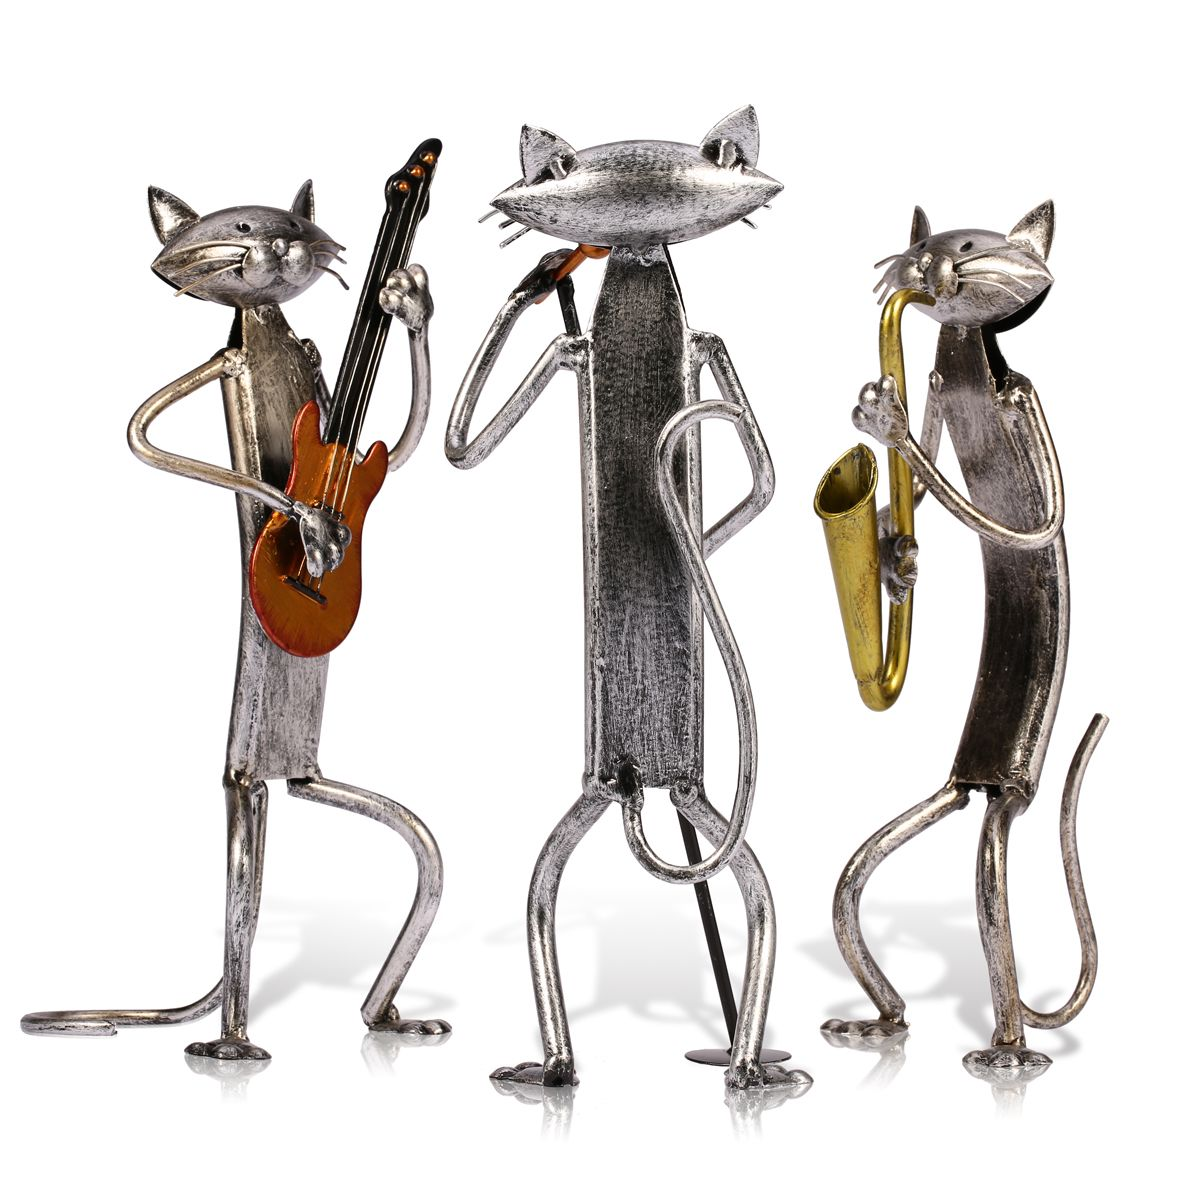 Metal Sculpture  Gift For New Year Playing Saxophone Singing Cat Figurine Home Furnishing Articles Handicrafts  Home Decoration